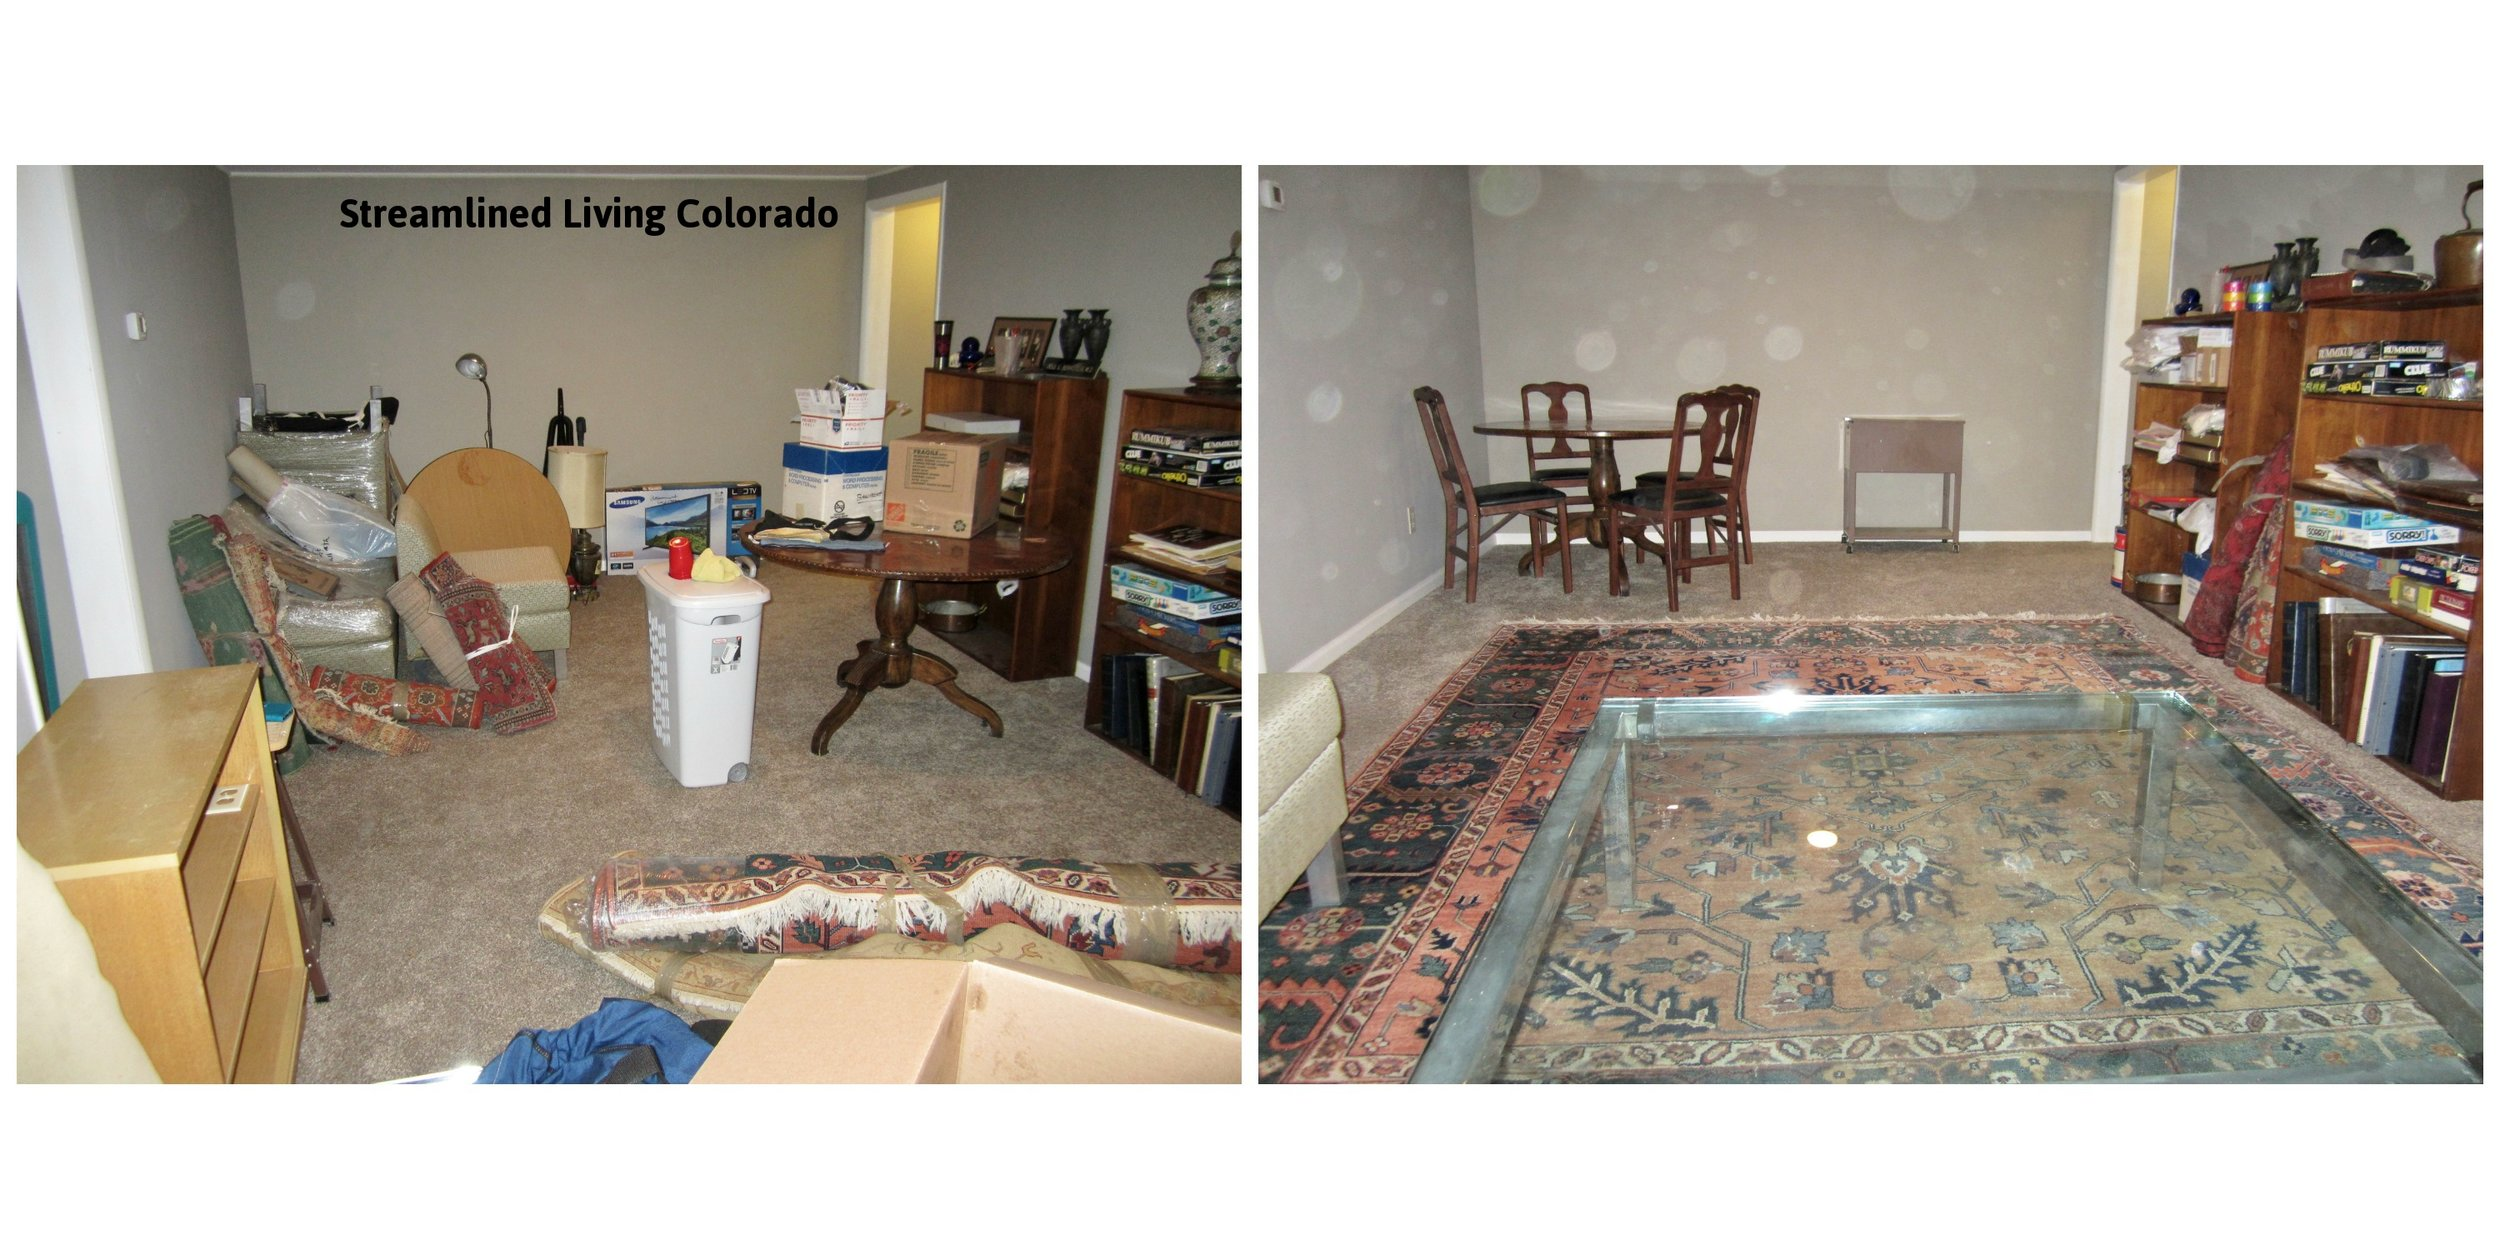 basement unpack and set up signed Streamlined Living Colorado.jpg